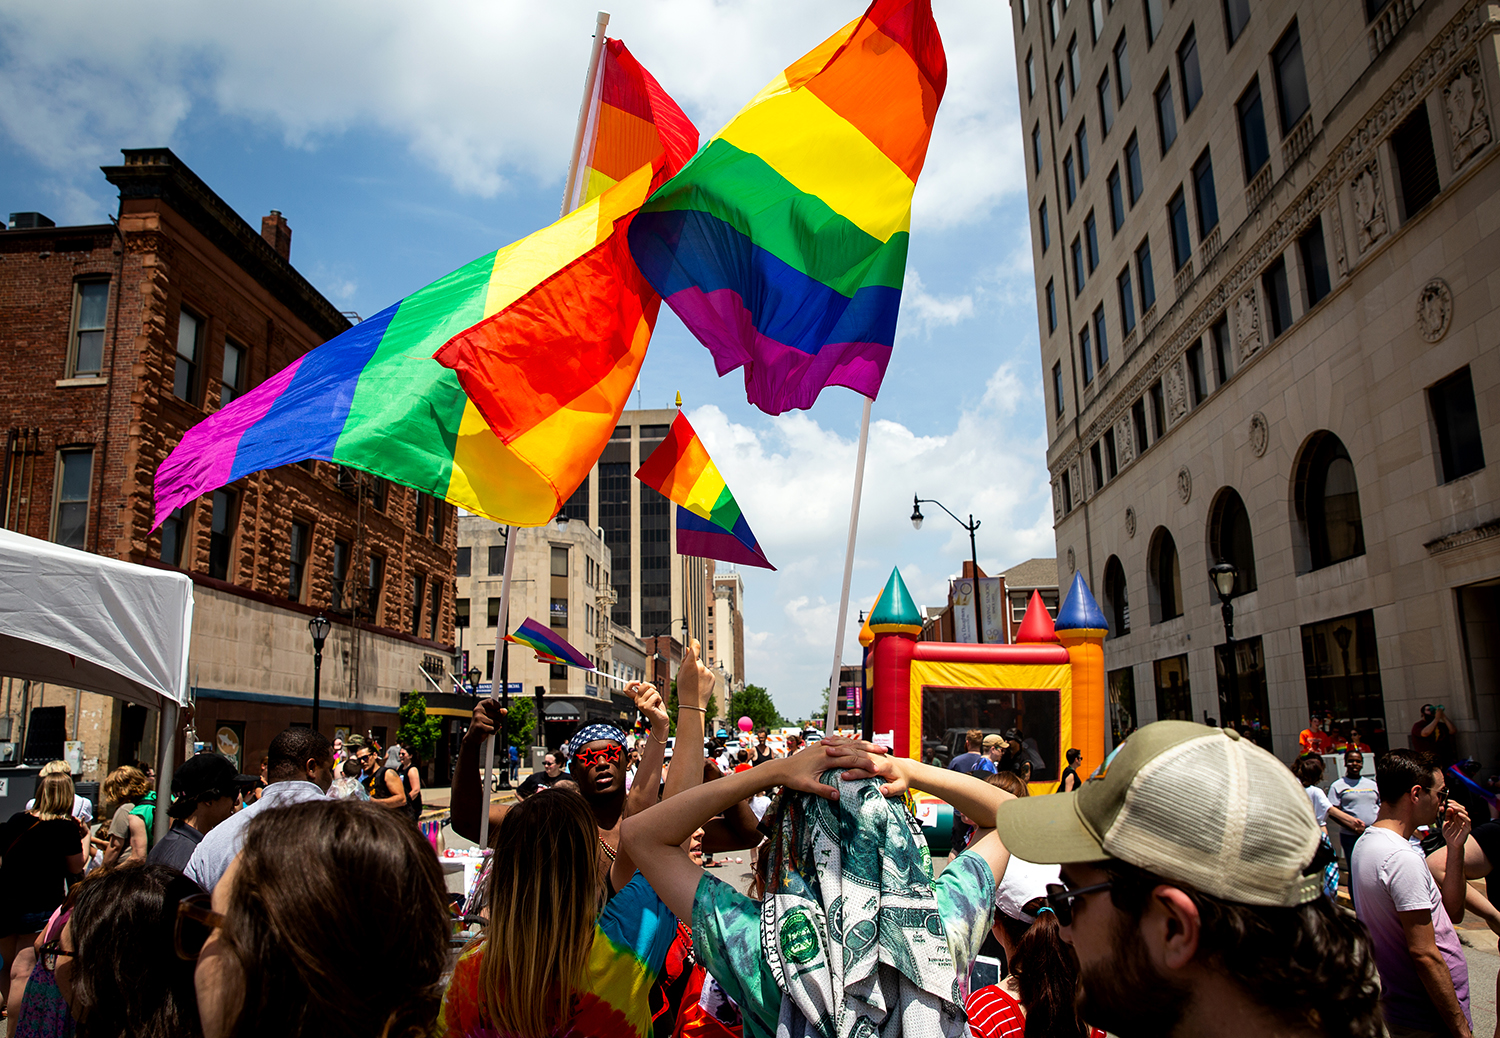 Gay pride rainbow flags fly high during Springfield's PrideFest parade and street party Saturday, May 19, 2018 in Springfield, Ill. [Rich Saal/The State Journal-Register]